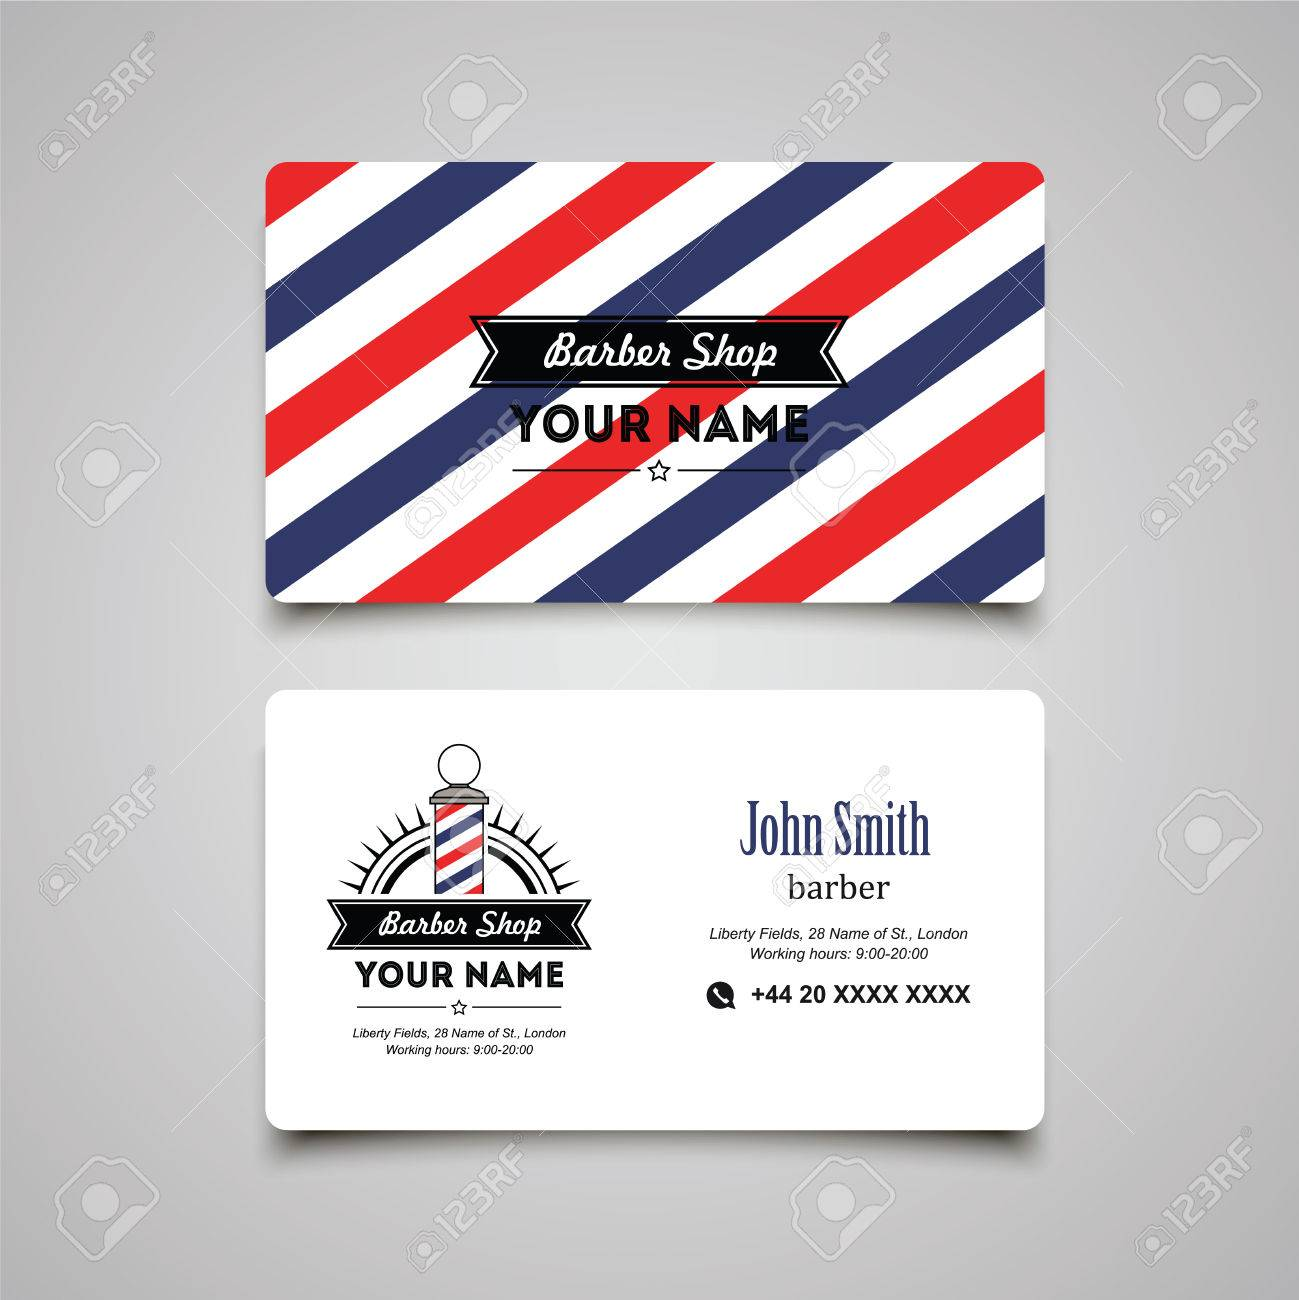 Hair salon barber shop business card design template royalty free hair salon barber shop business card design template stock vector 43247448 fbccfo Choice Image